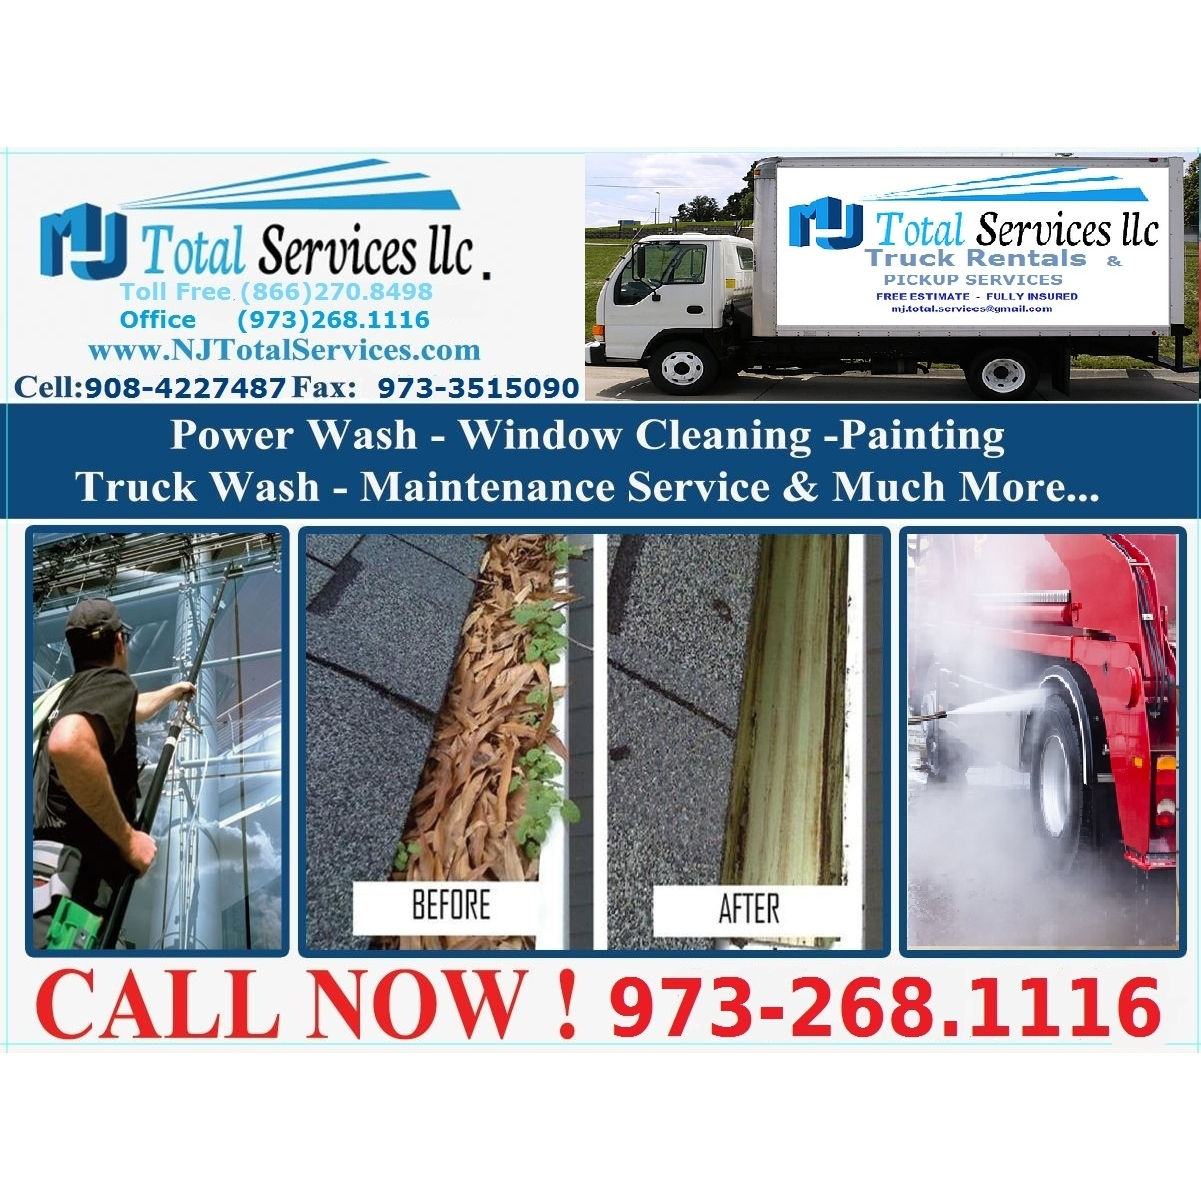 MJ Total Services LLC